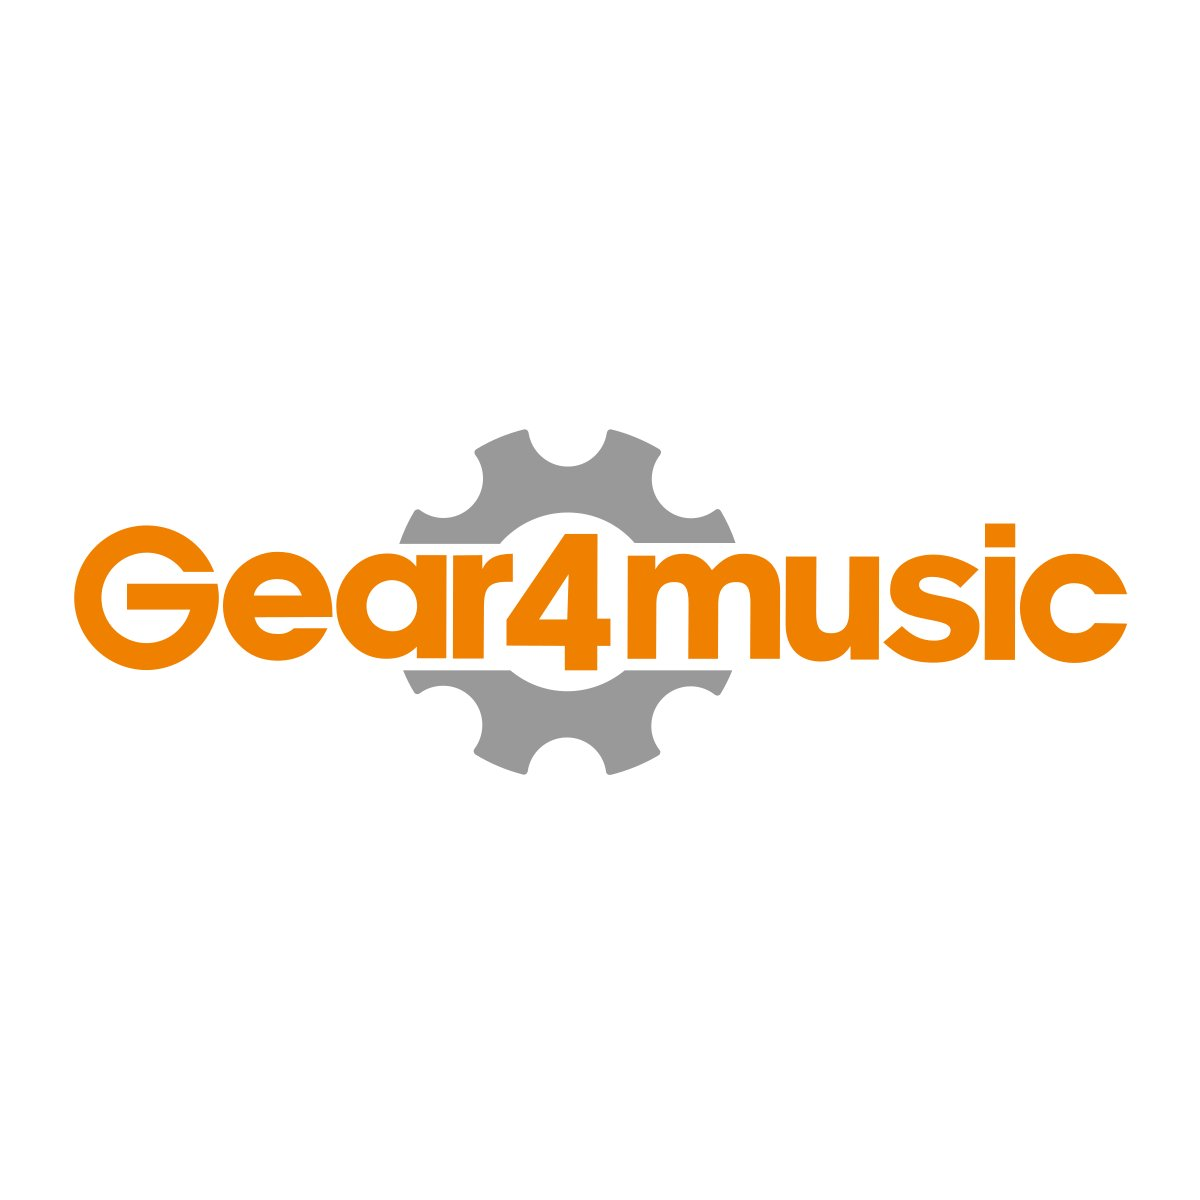 Image of Curved Soprano Saxophone by Gear4music